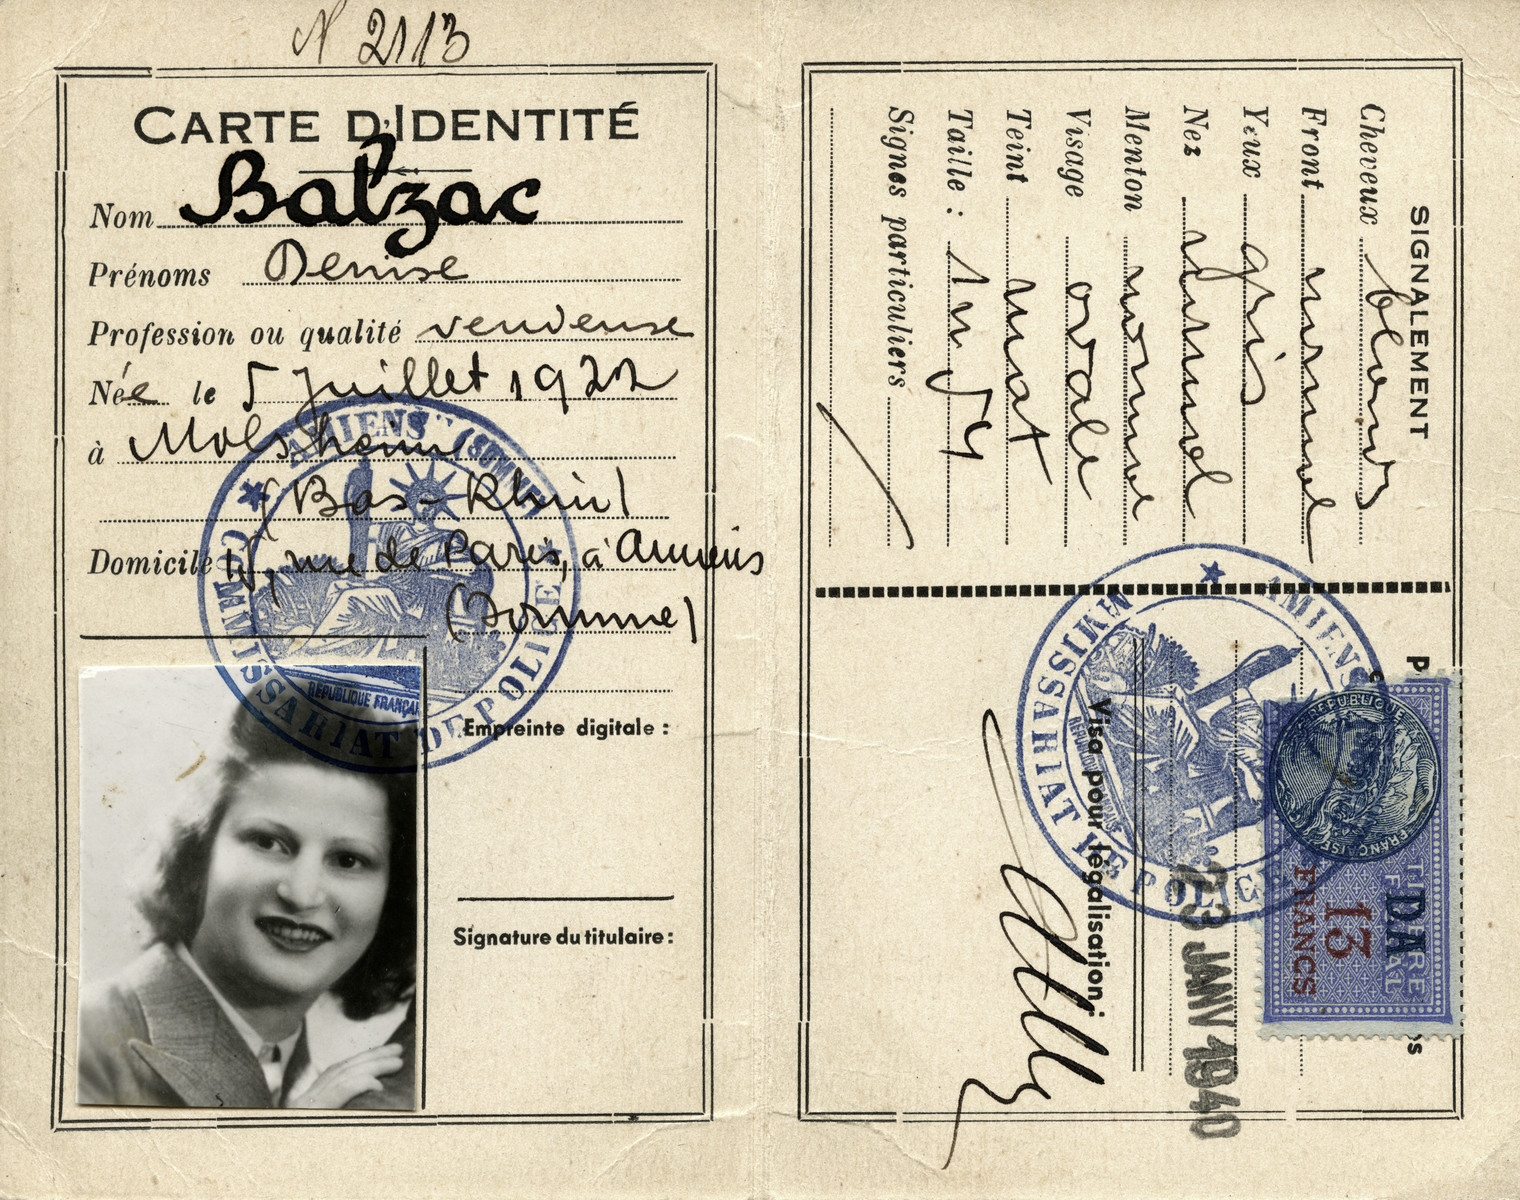 False papers given to Dora Licht under the pseudonym of Denise Balzac.  [The January 1940 date is clearly false as well since Germany only invaded France in May 1940, so at the time this card was supposedly issued, Dora Licht was still using her true name.]